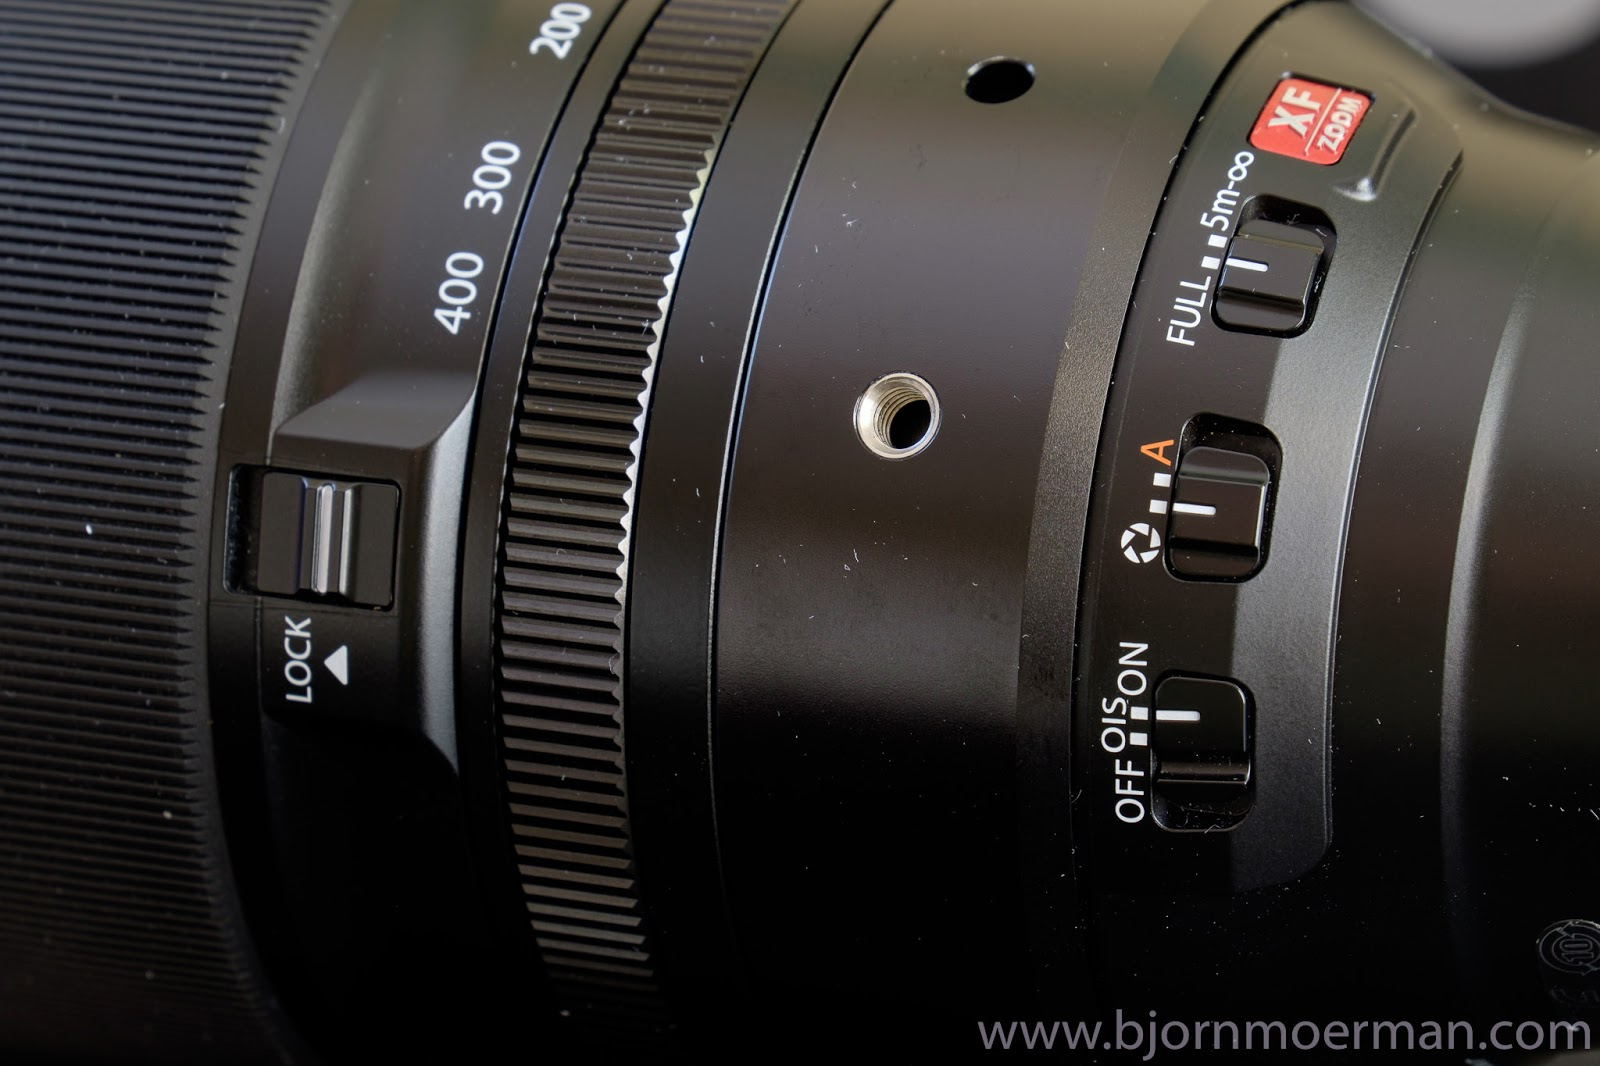 Bjrn Moerman Photography First Look Fujifilm Xf100 400 F45 56 R Fujinon Xf 100 400mm F 45 Lm Ois Wr Autofocus All The Way Across Zoom Range Is Fast And Precise In Normal Lighting Conditions Very Low Light Lens Does Take Its Time To Focus